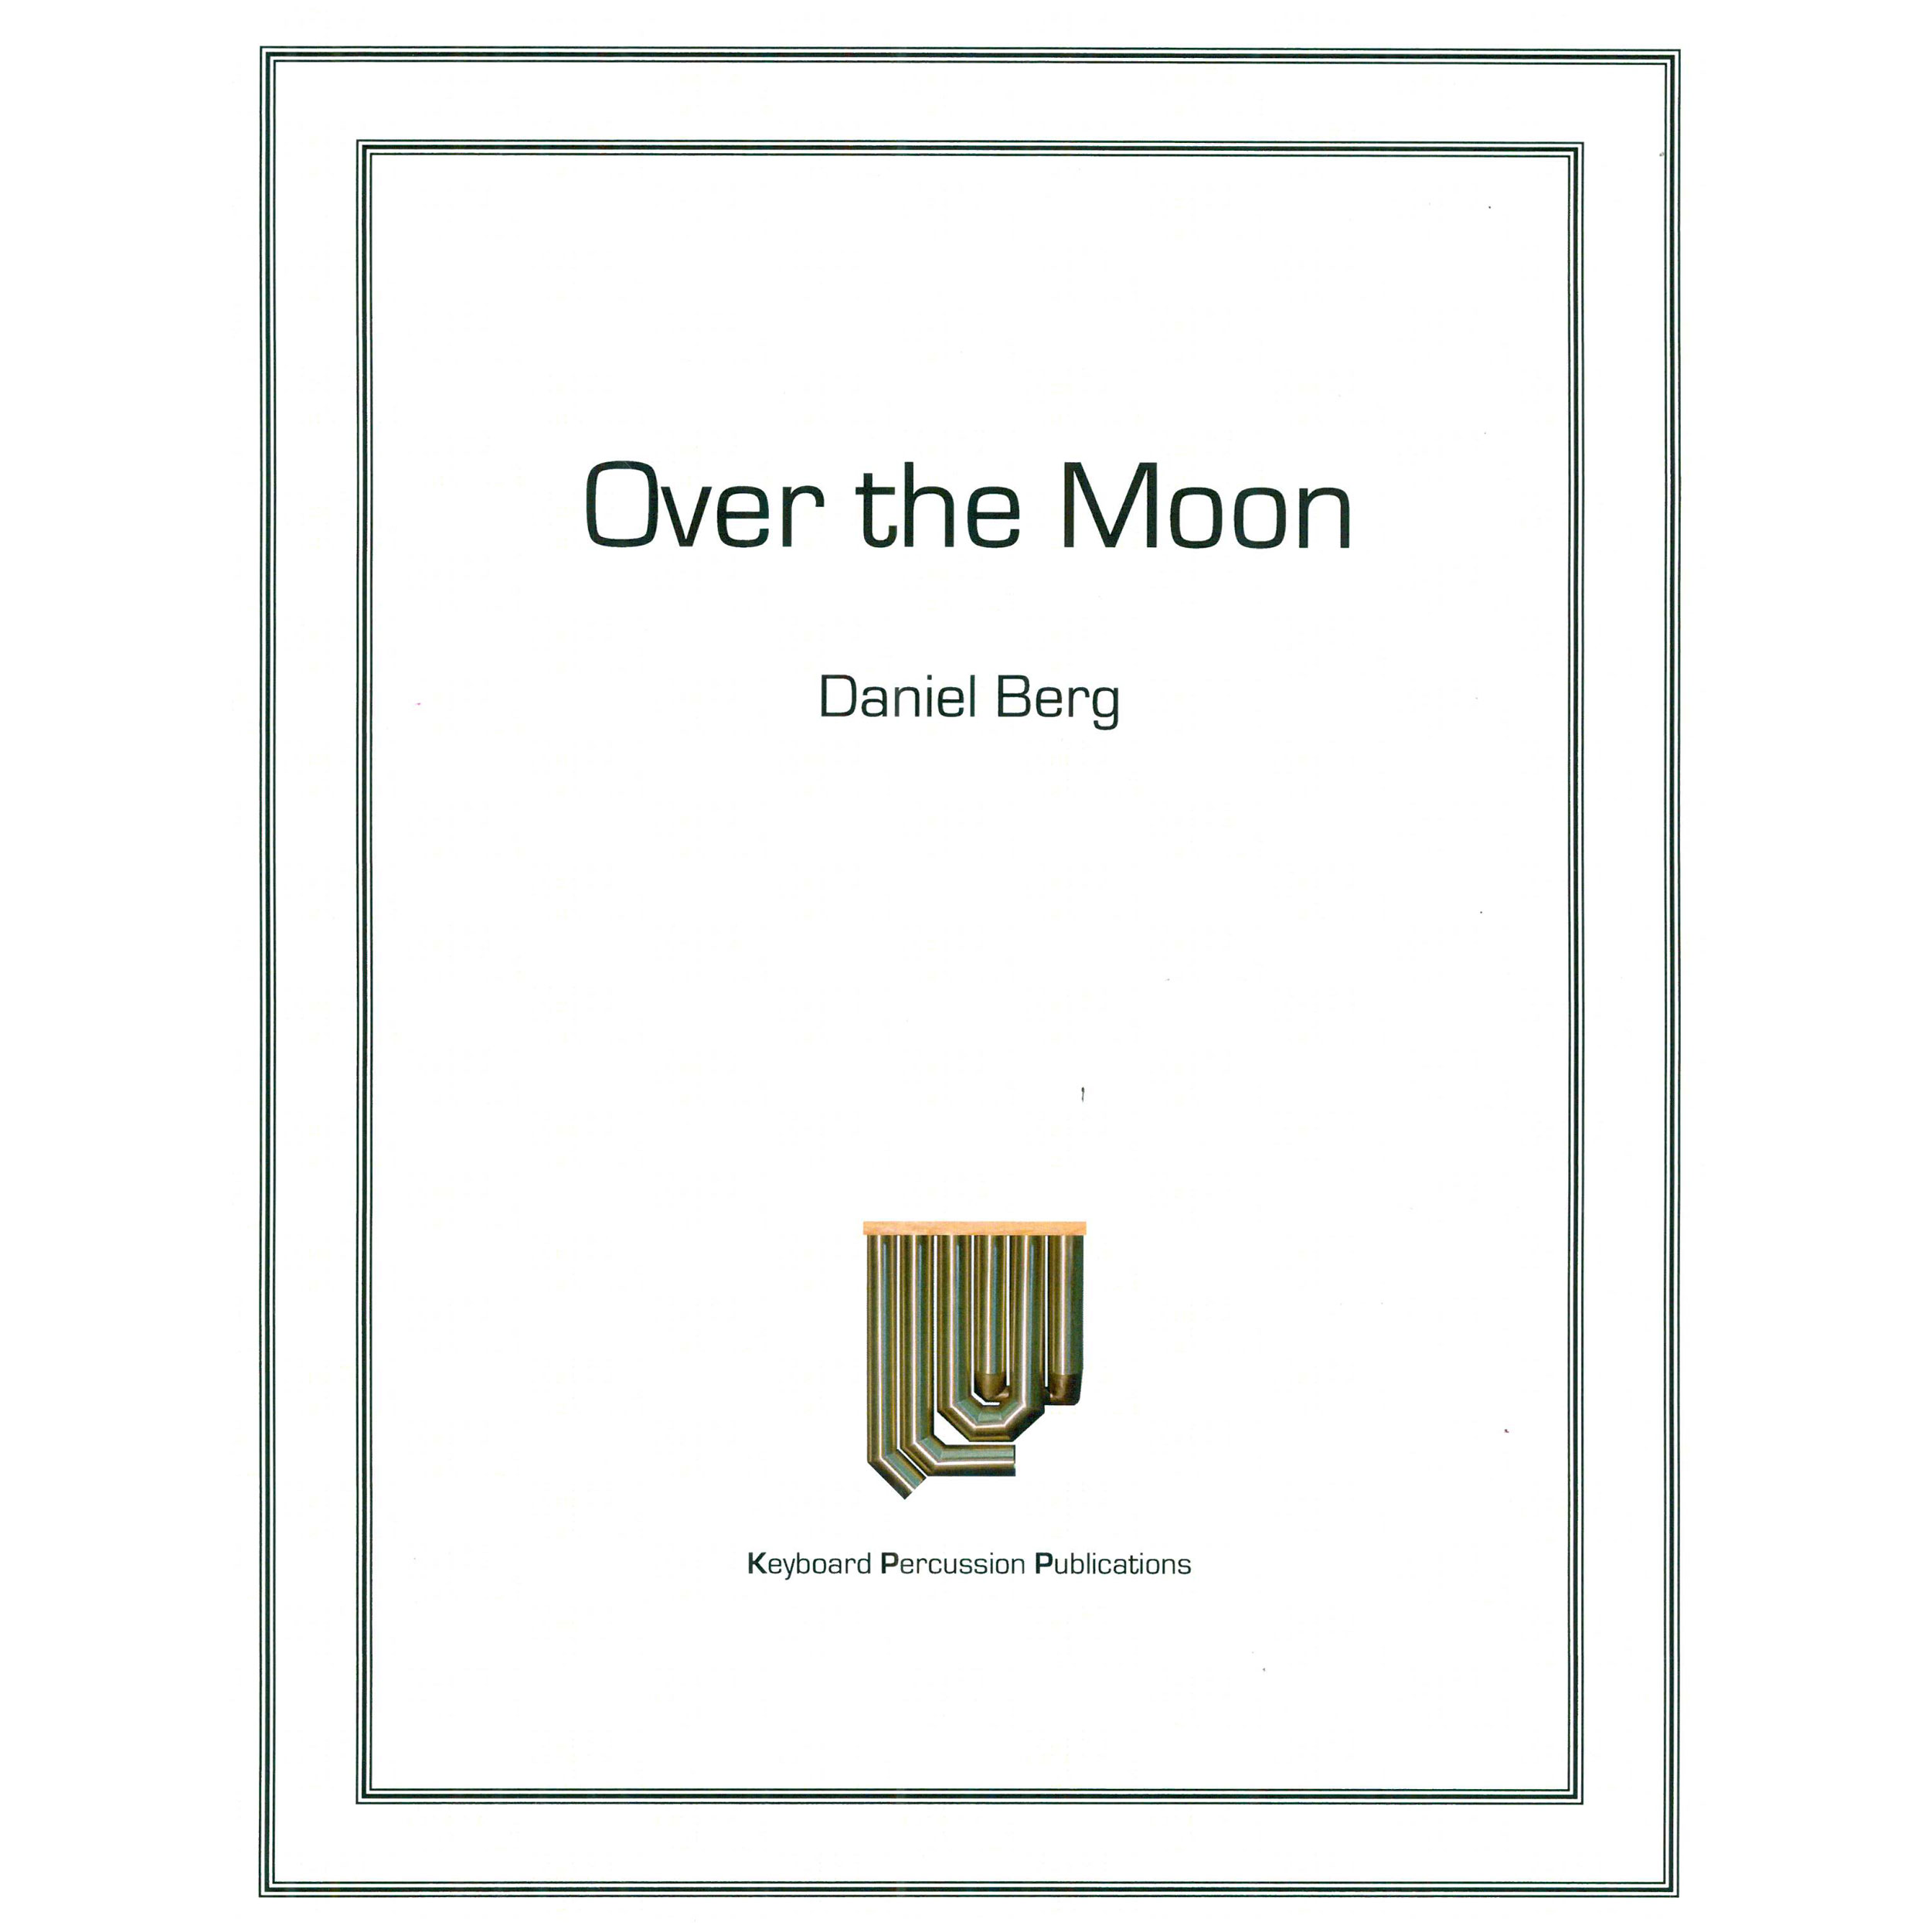 Over the Moon by Daniel Berg